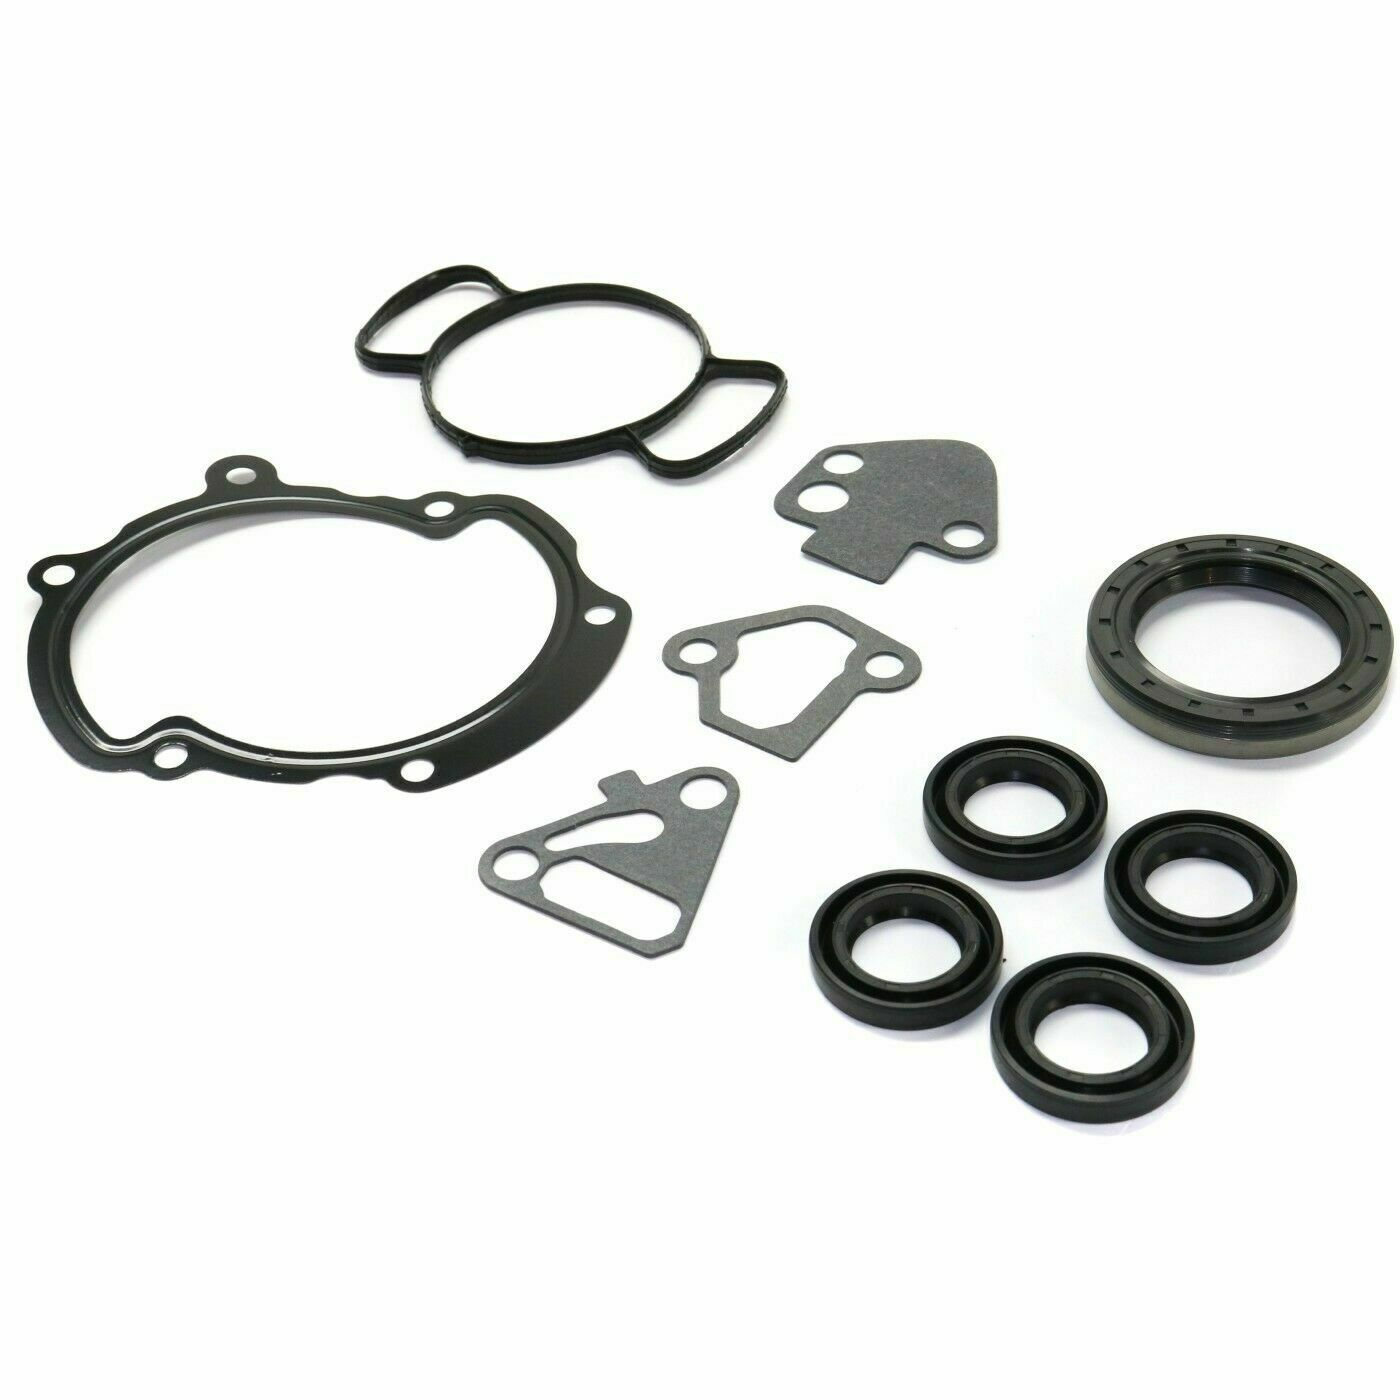 Timing Chain Kit For 2008-2013 Chevy Equinox / 2008-2016